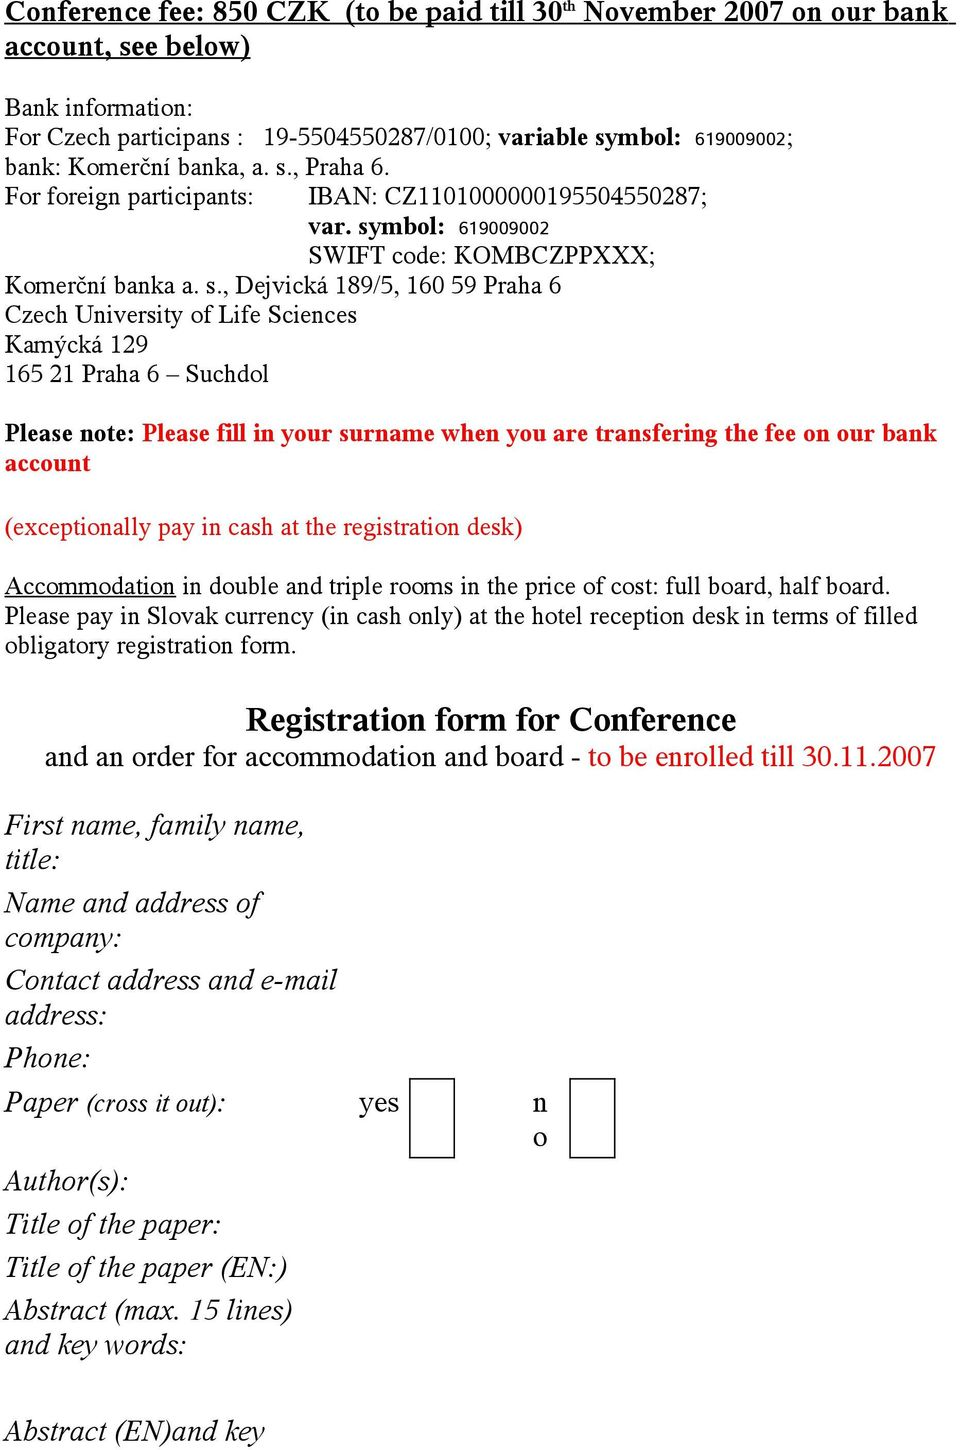 , Praha 6. For foreign participants: IBAN: CZ1101000000195504550287; var. sy